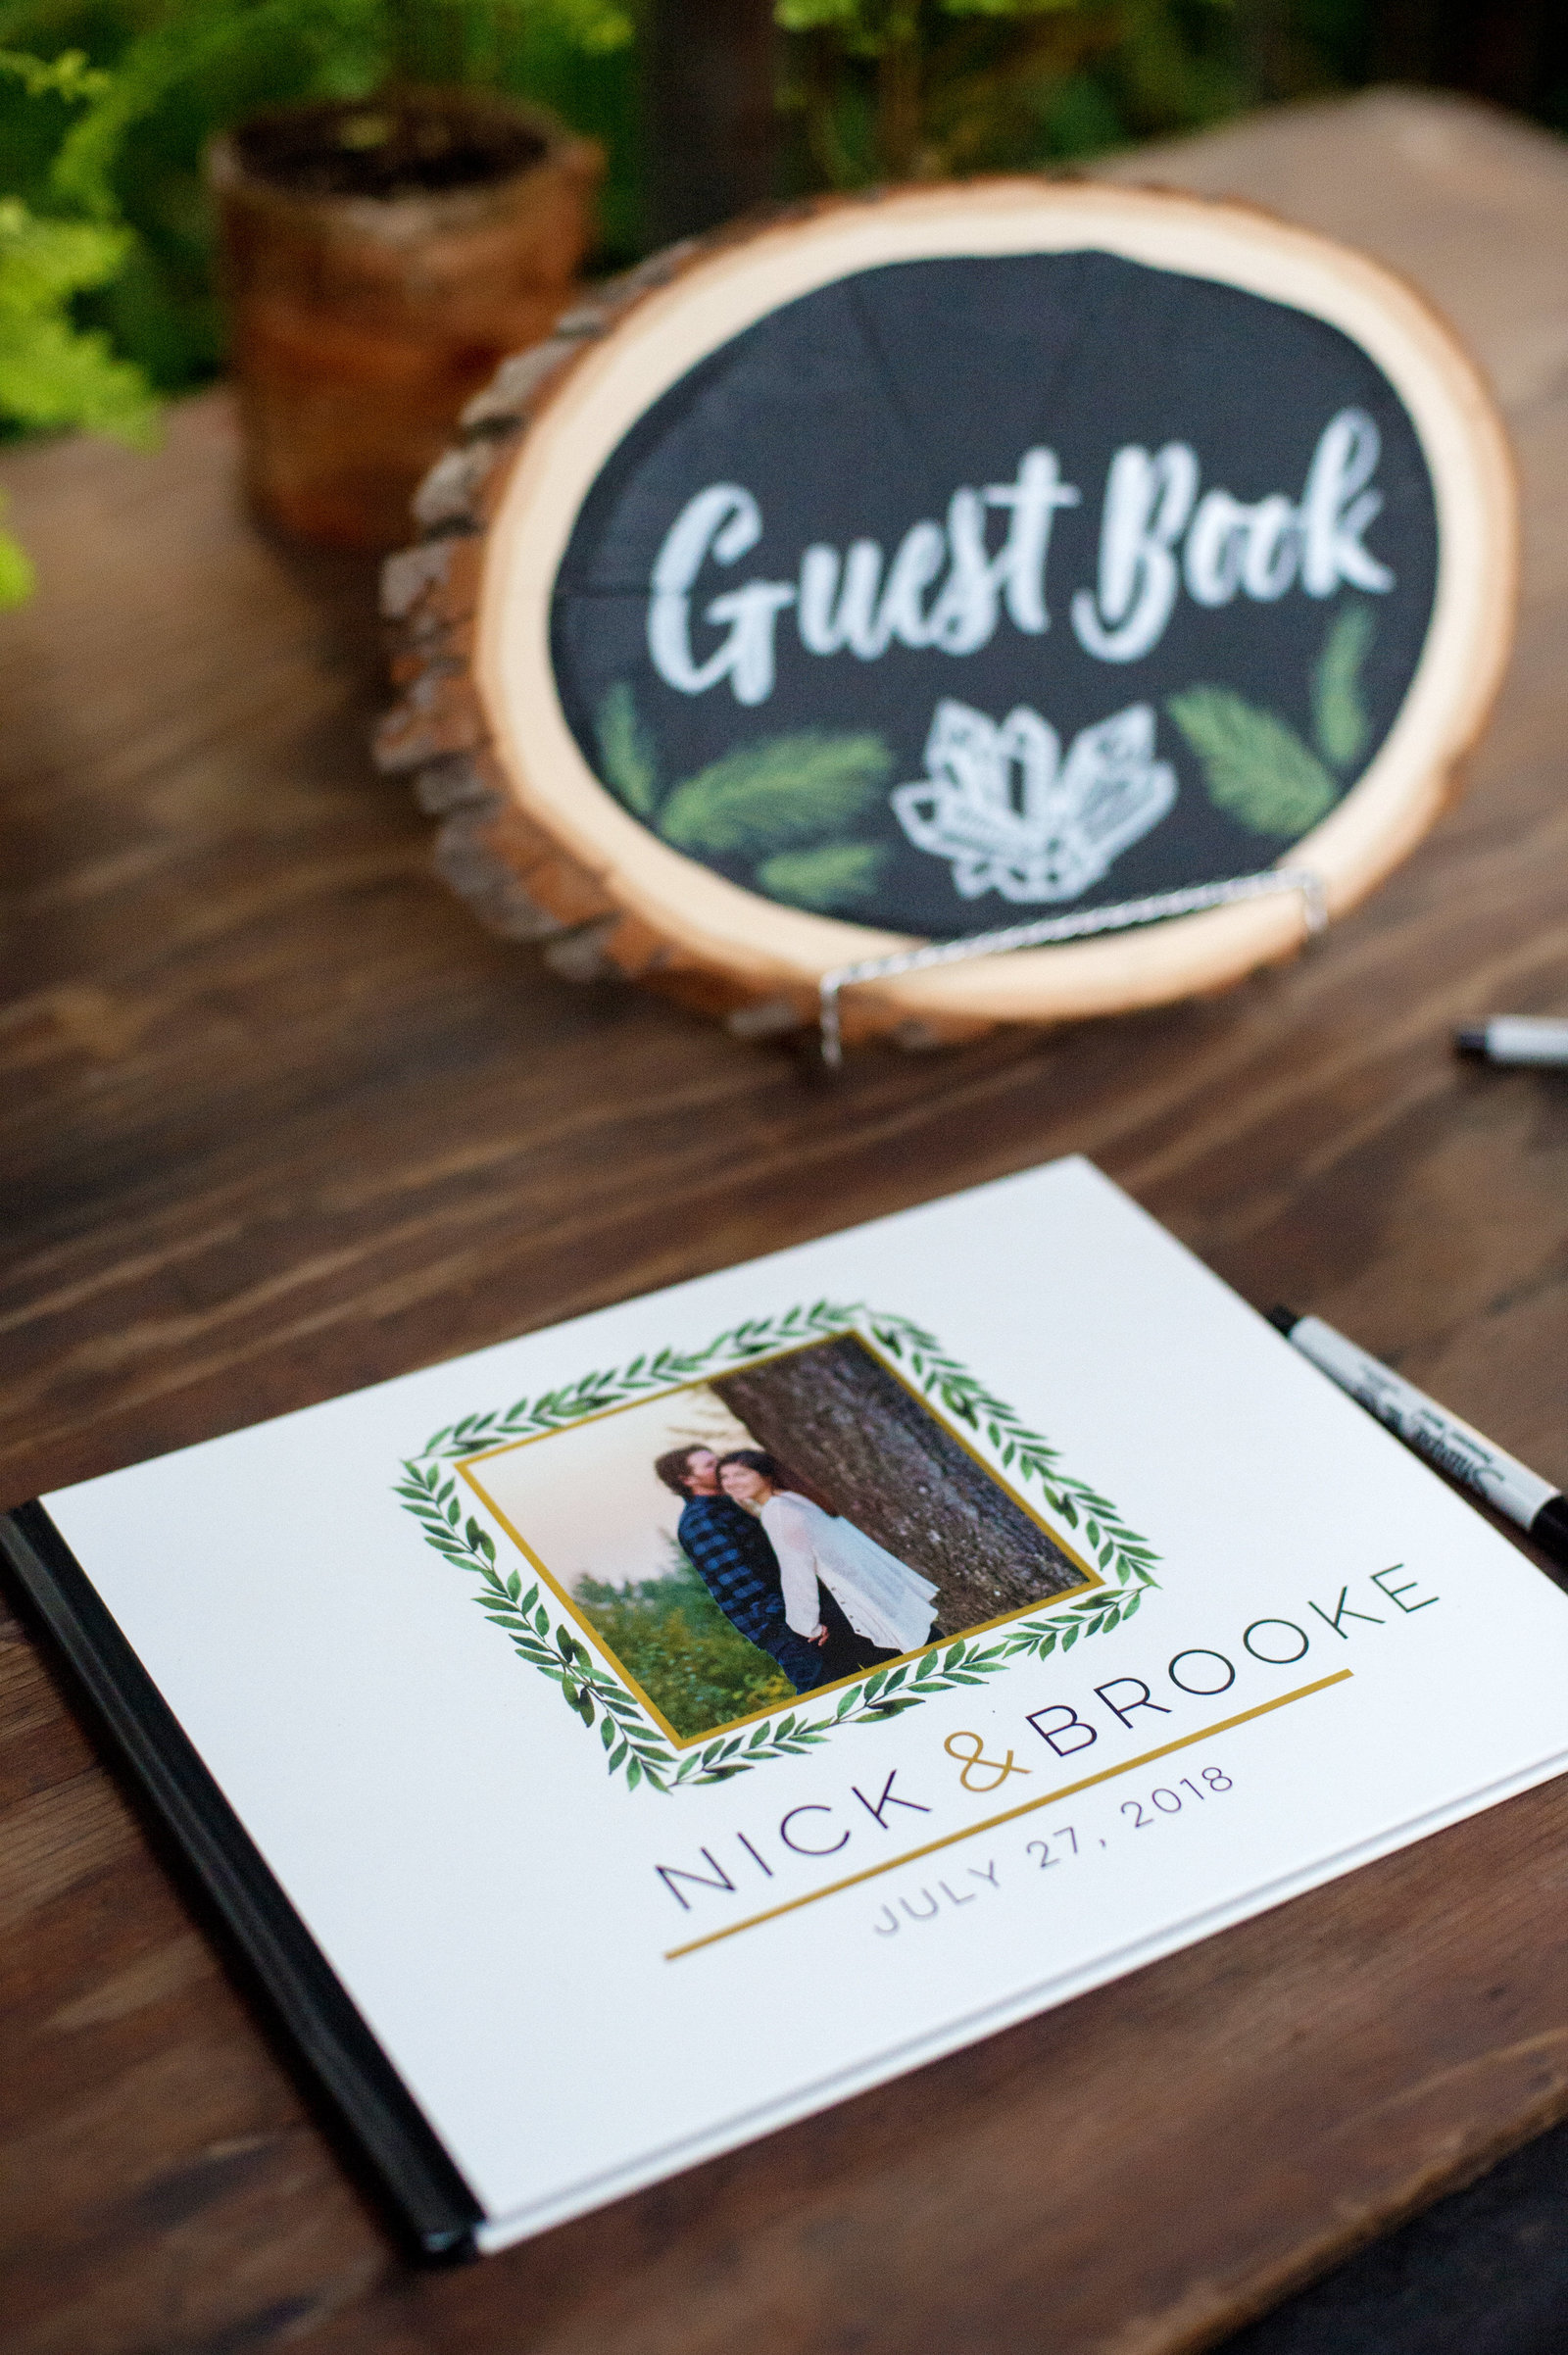 guest gook sign written on cut wood